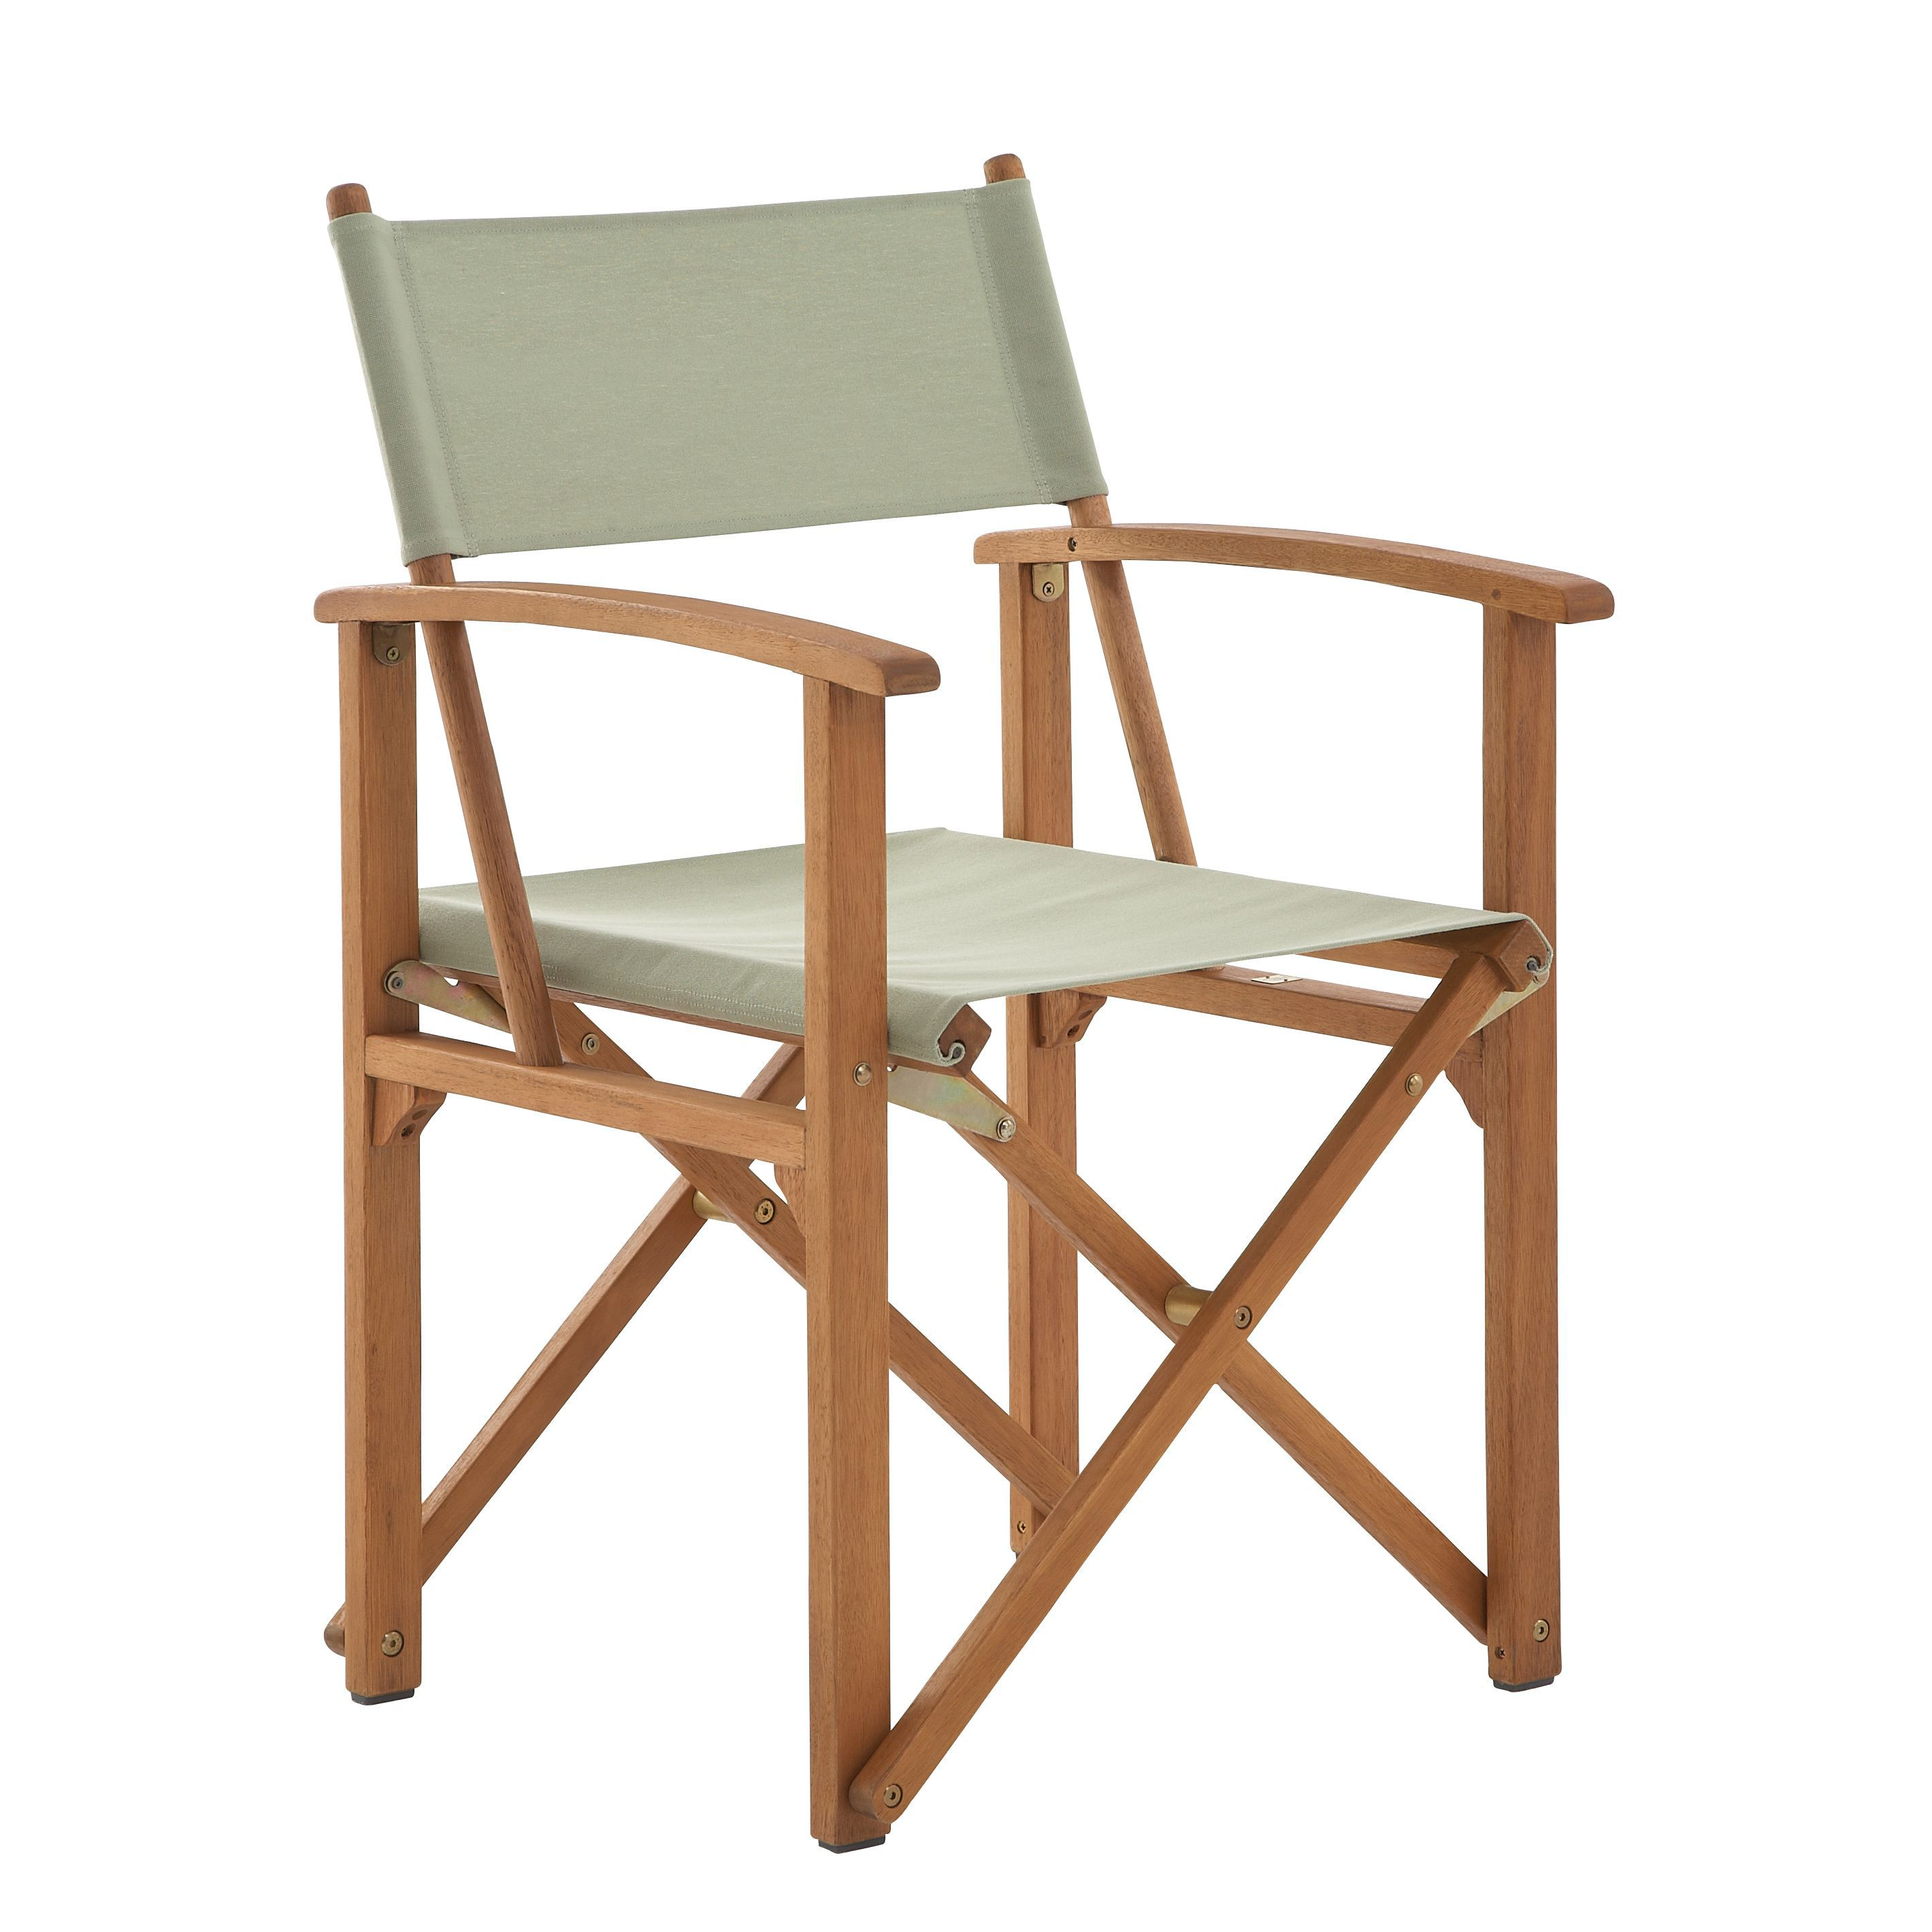 Wooden Directors Chairs aland wooden director chair | departments | diy at b&q